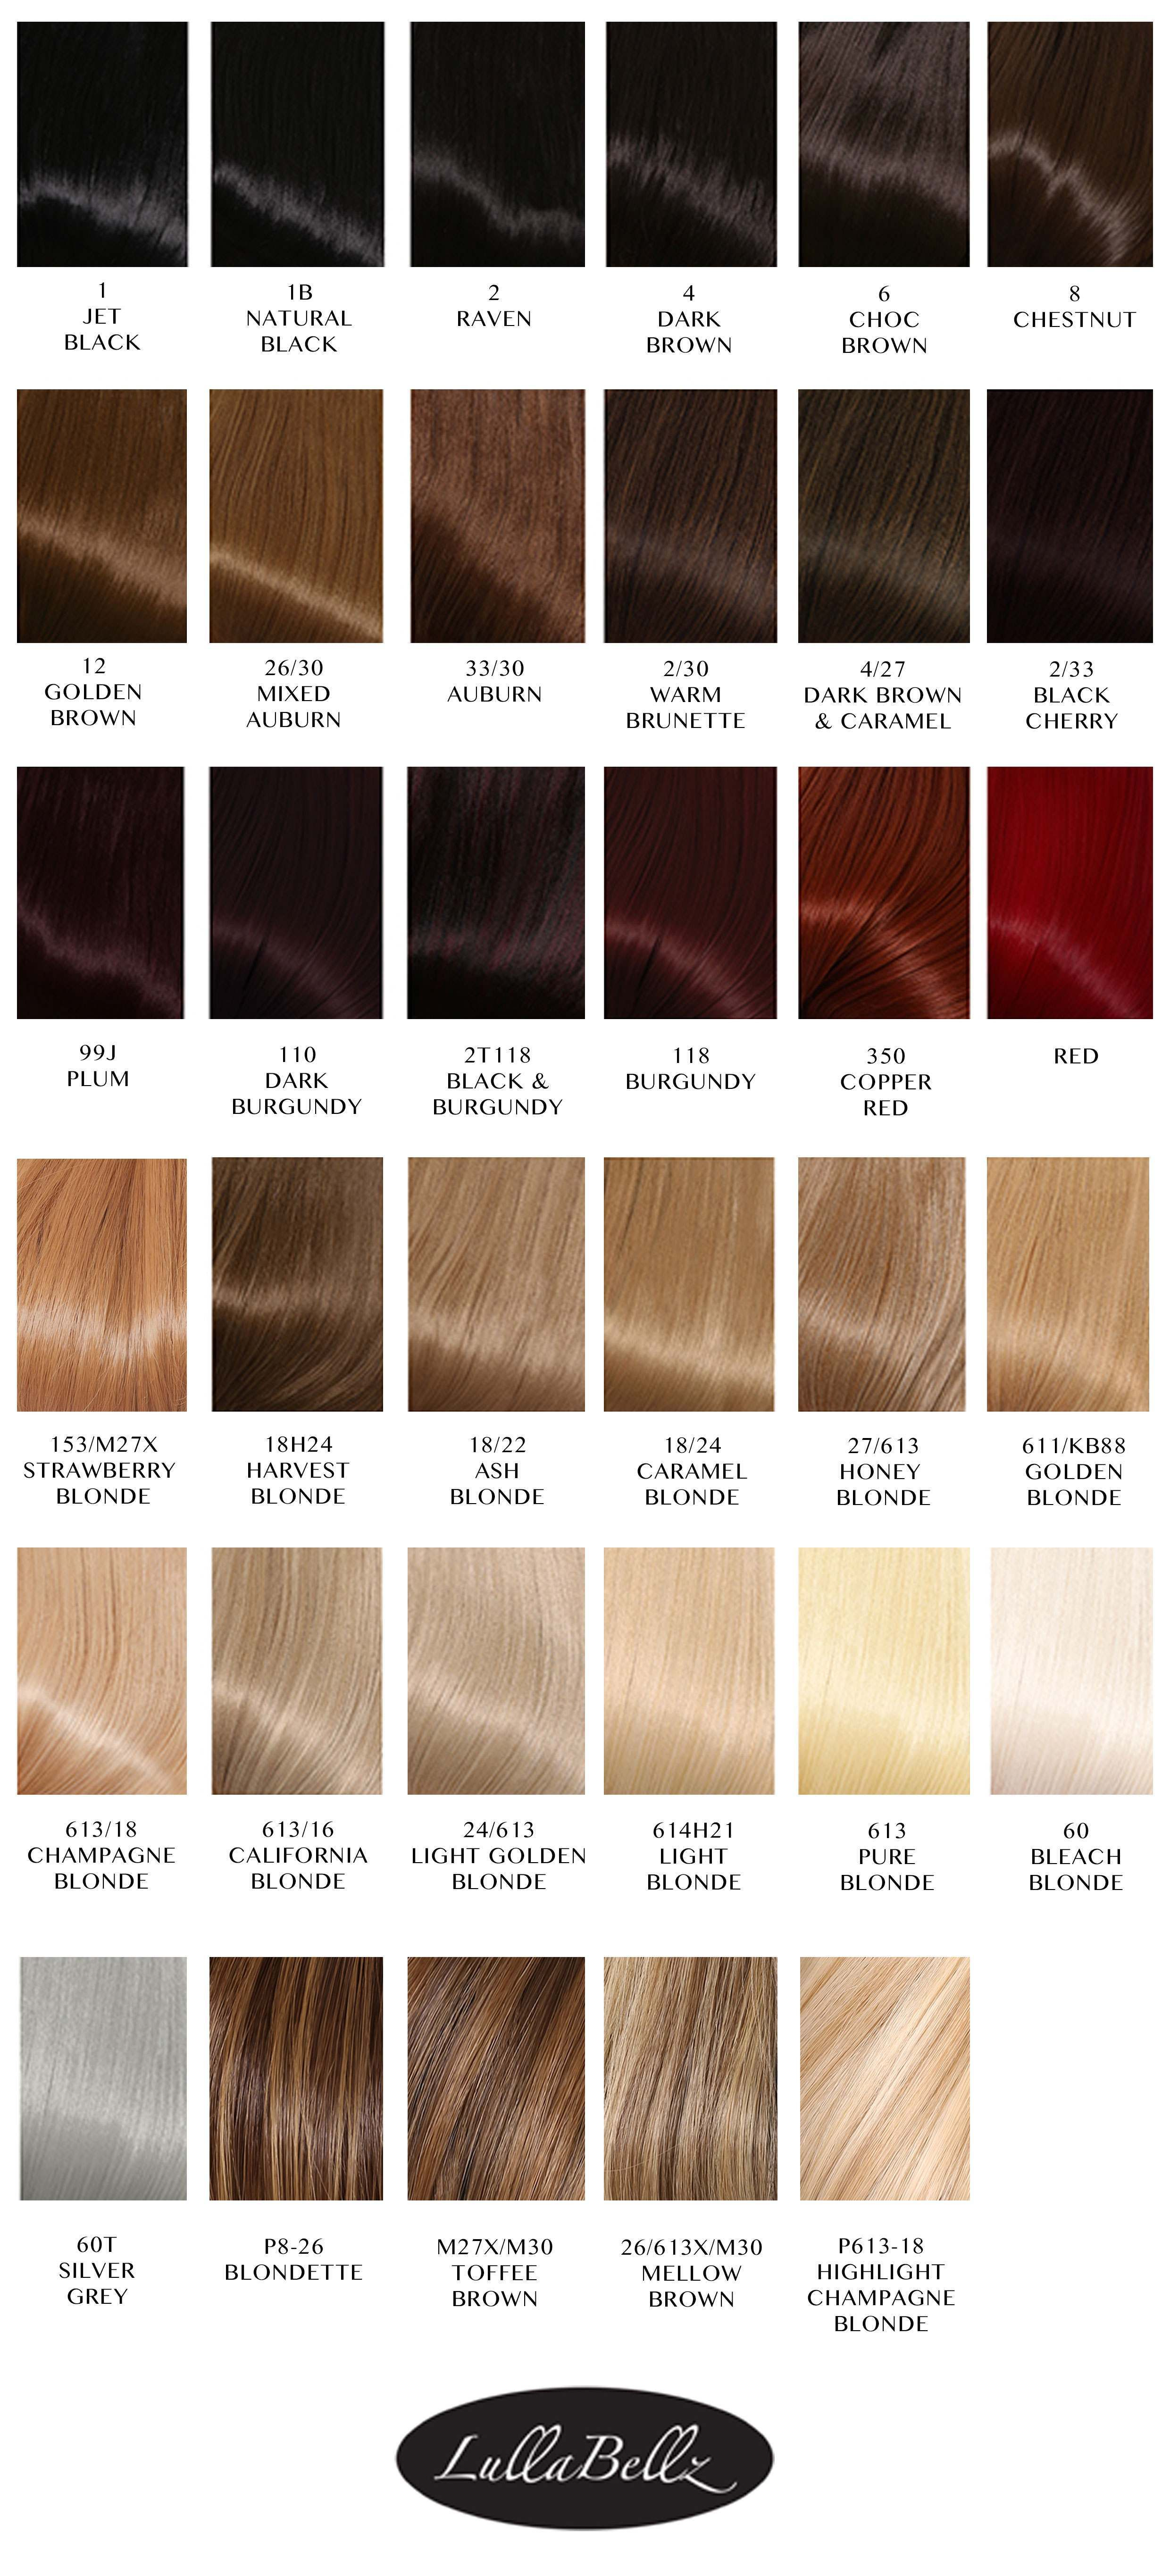 Dark Strawberry Blonde Hair Color Chart In 2020 Blonde Hair Color Chart Hair Color Chart Strawberry Blonde Hair Color